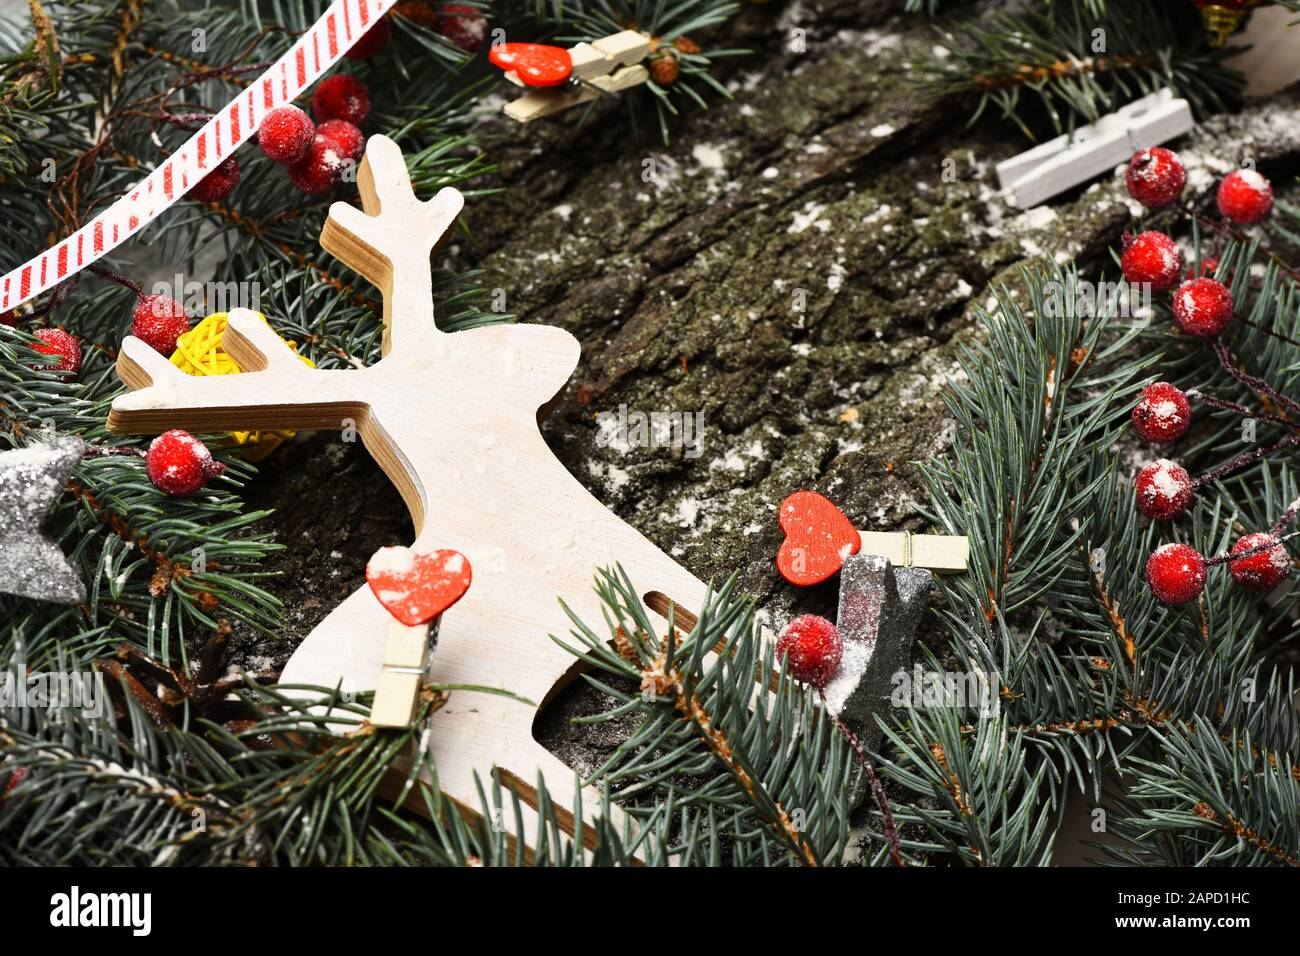 Composition Of Christmas Tree Decor Christmas Decorations On Rough Wooden Texture Background Deer In White Color